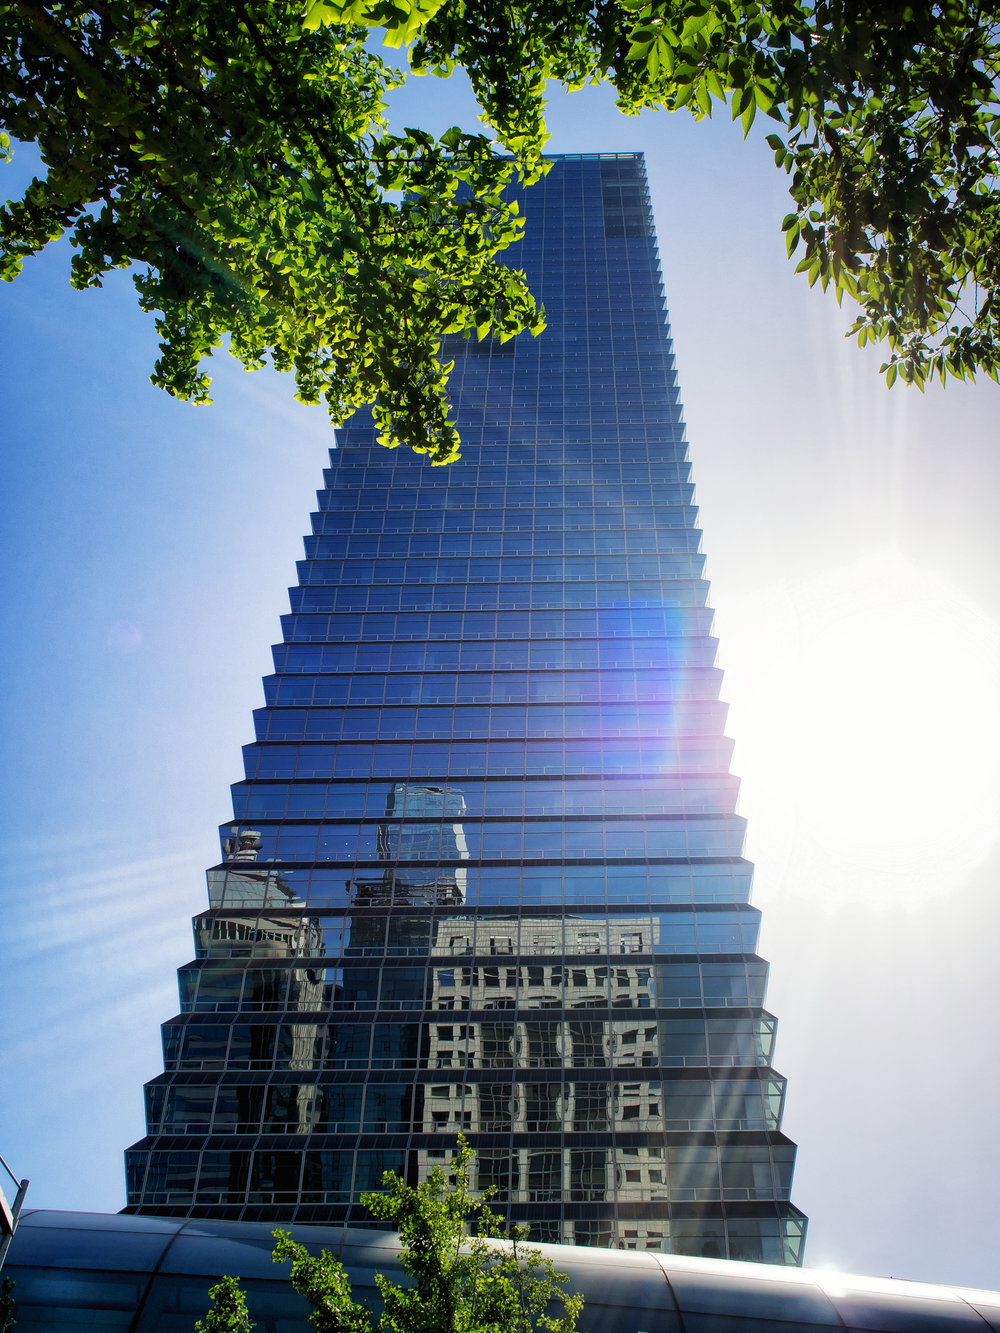 The FKI tower in Yeouido where The Skyfarm is located.